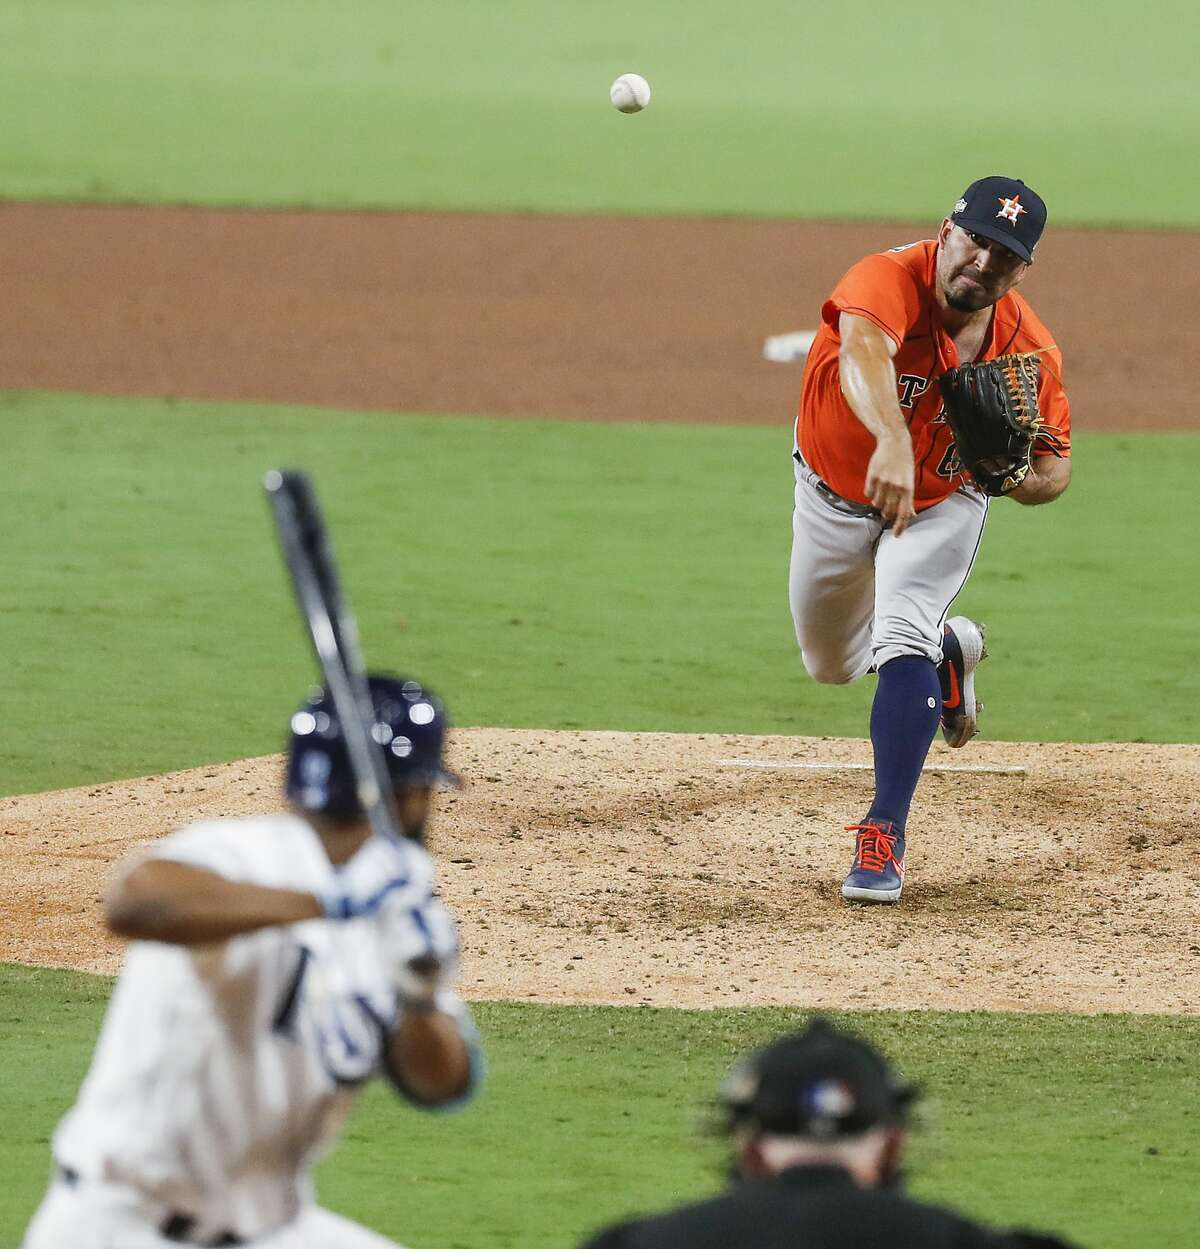 Houston Astros reliever Jose Urquidy pitches against the Tampa Bay Rays during the fifth inning of Game 7 of the American League Championship Series at Petco Park Saturday, Oct. 17, 2020, in San Diego.